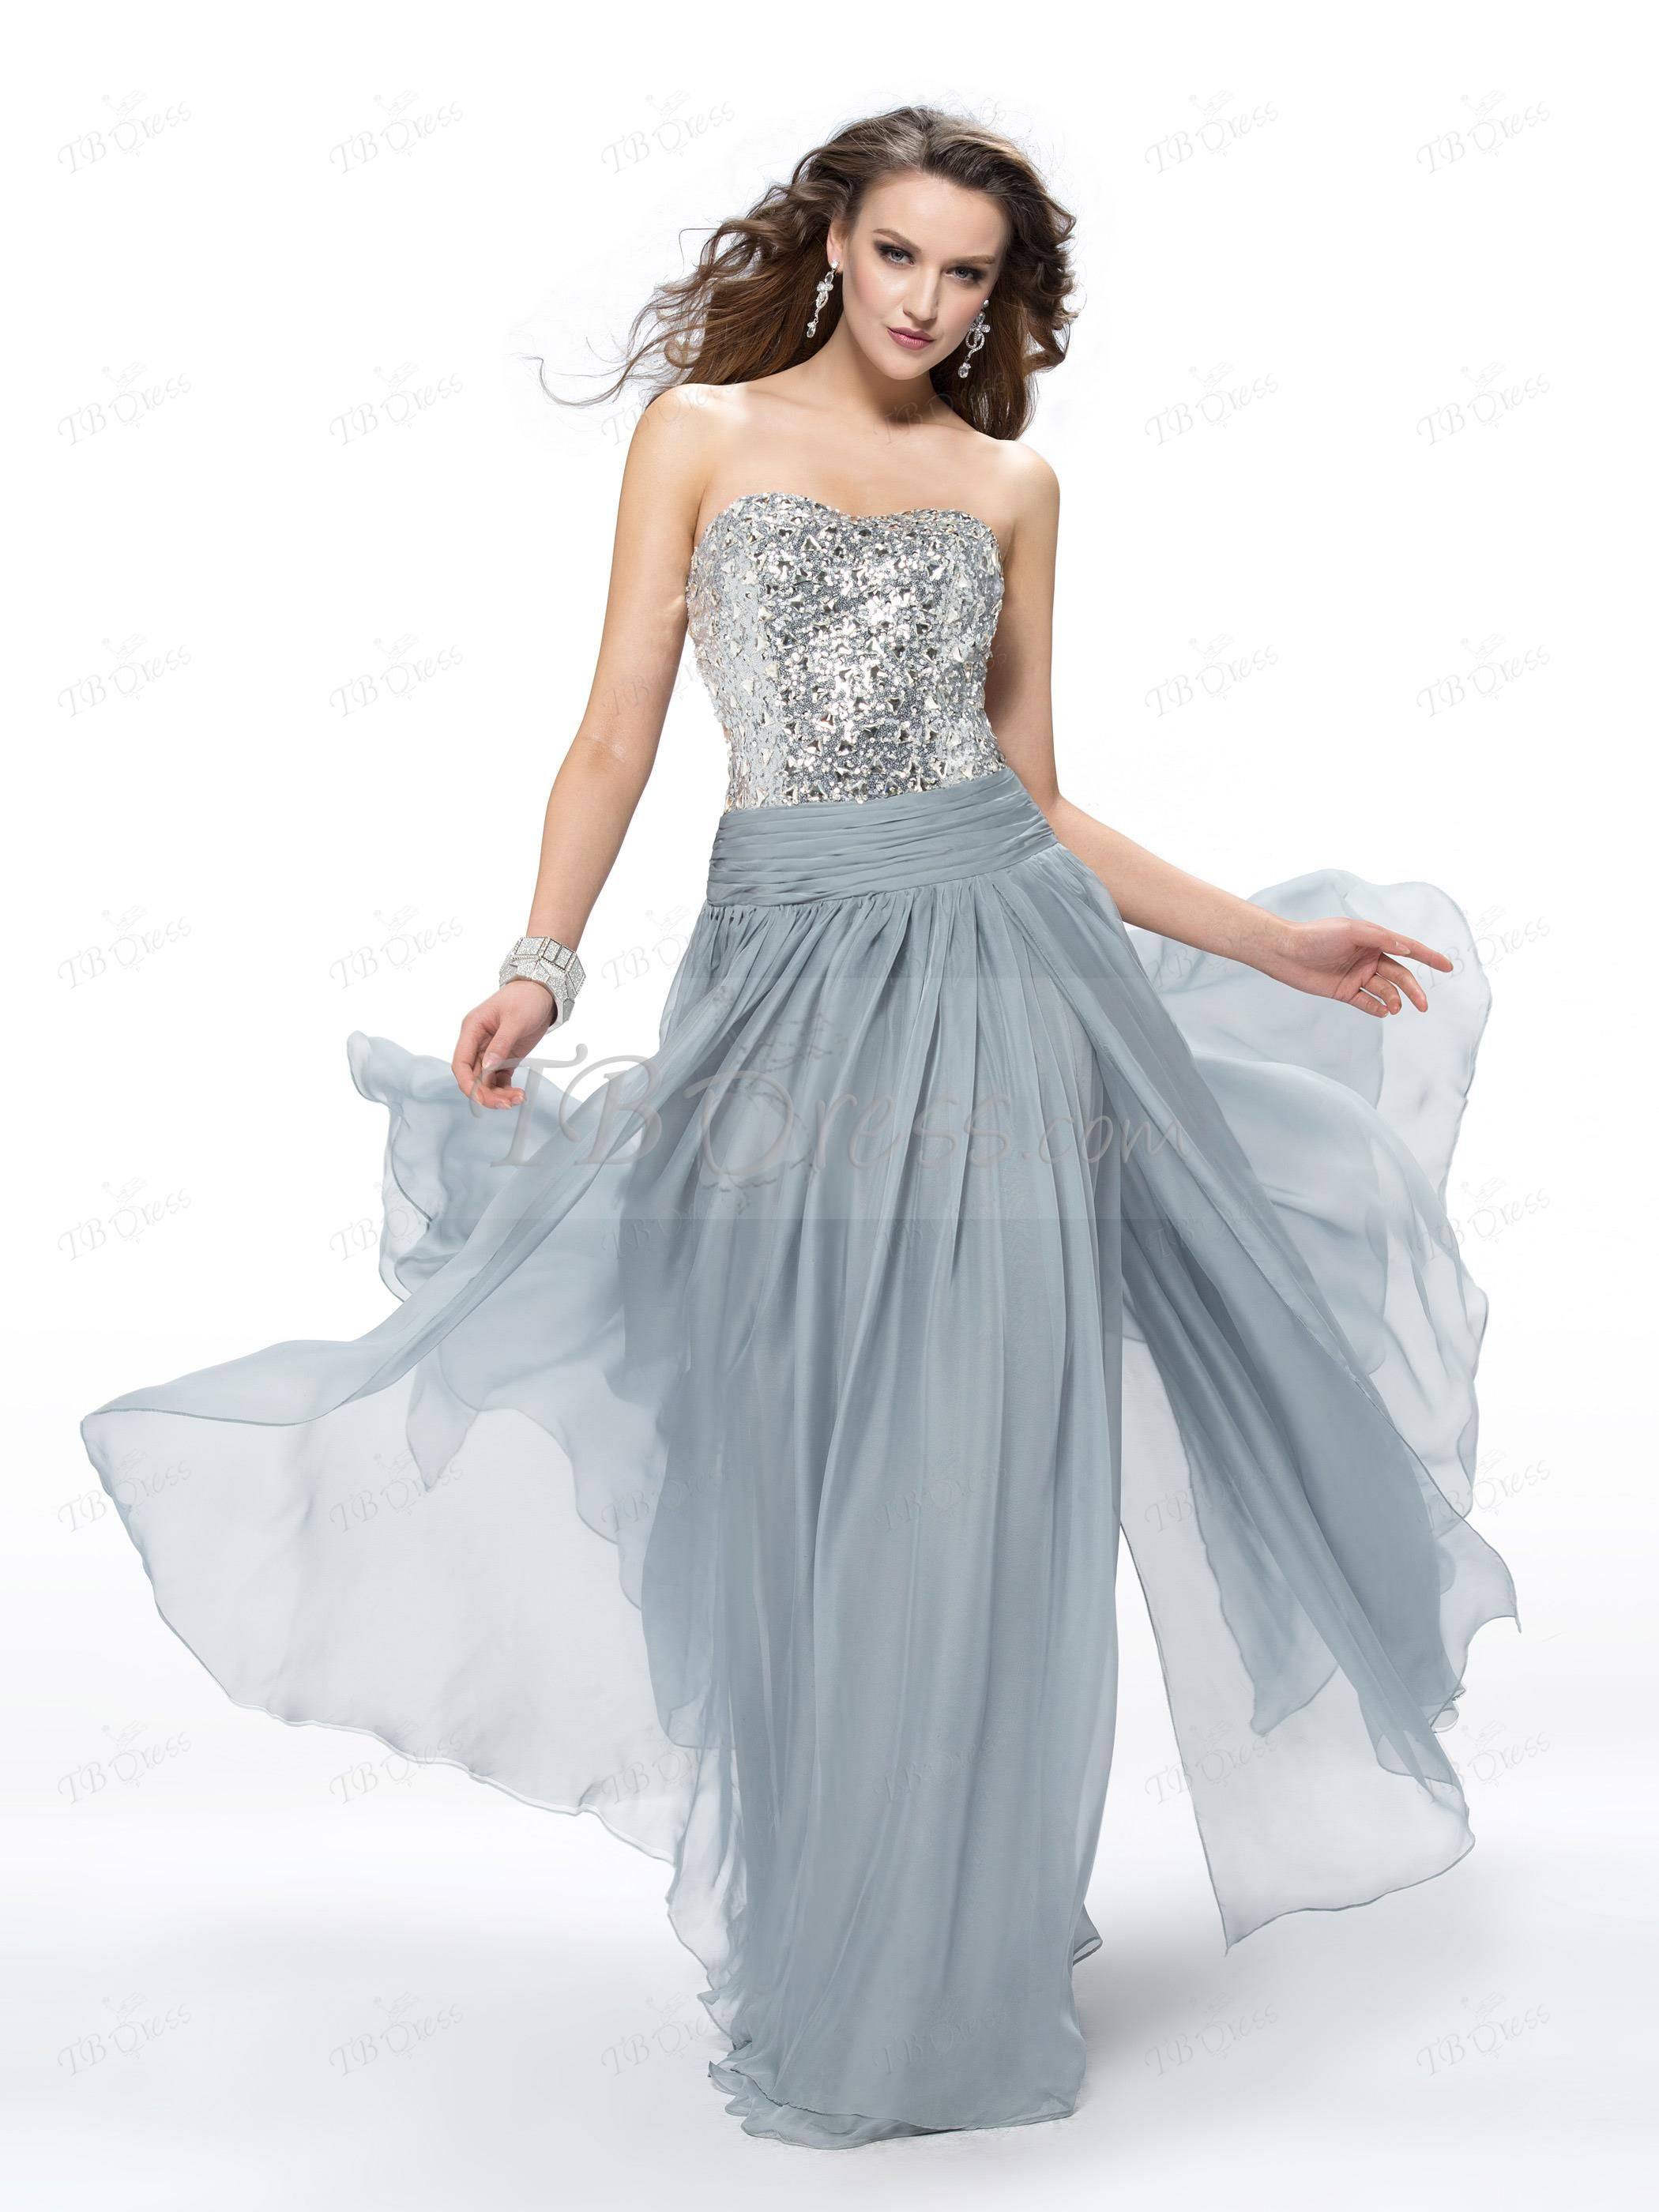 Aline sweetheart beading sequins prom dress designed independently